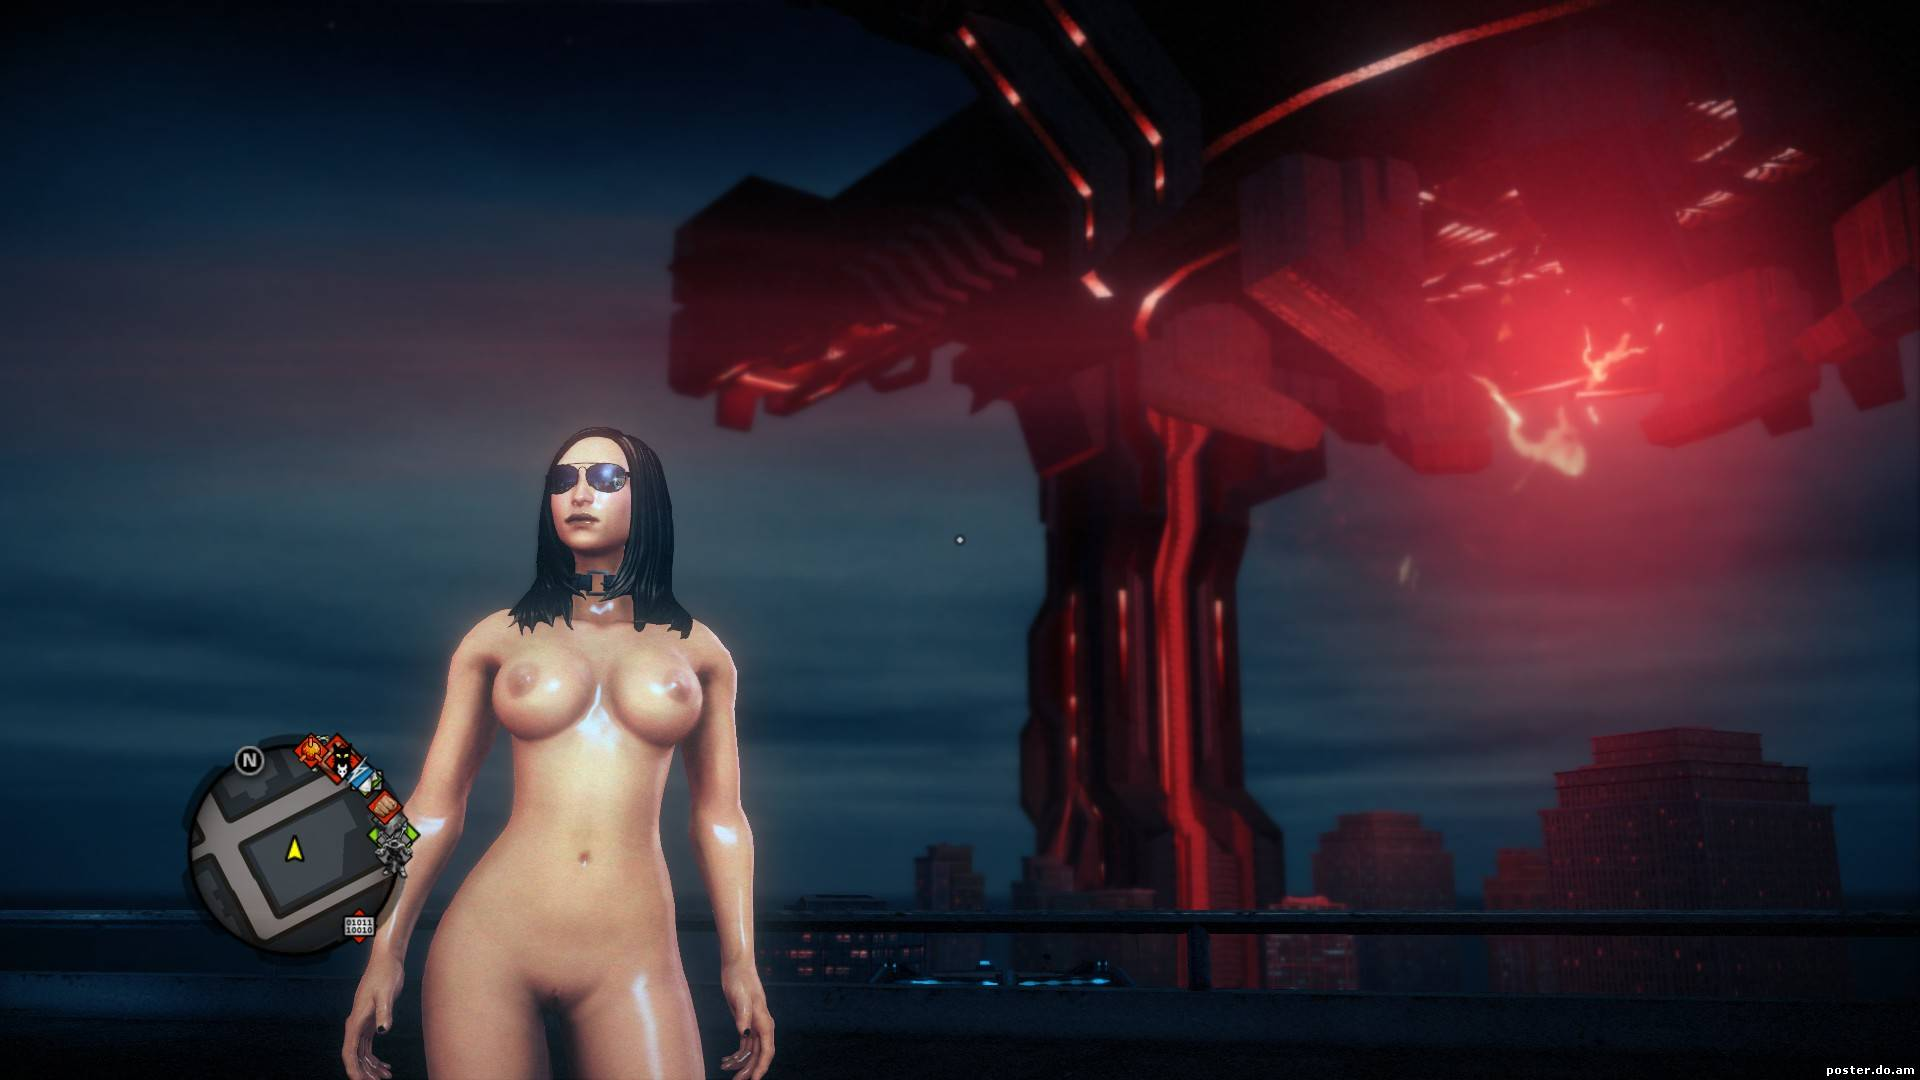 Saints row 3 nude patch pron pics